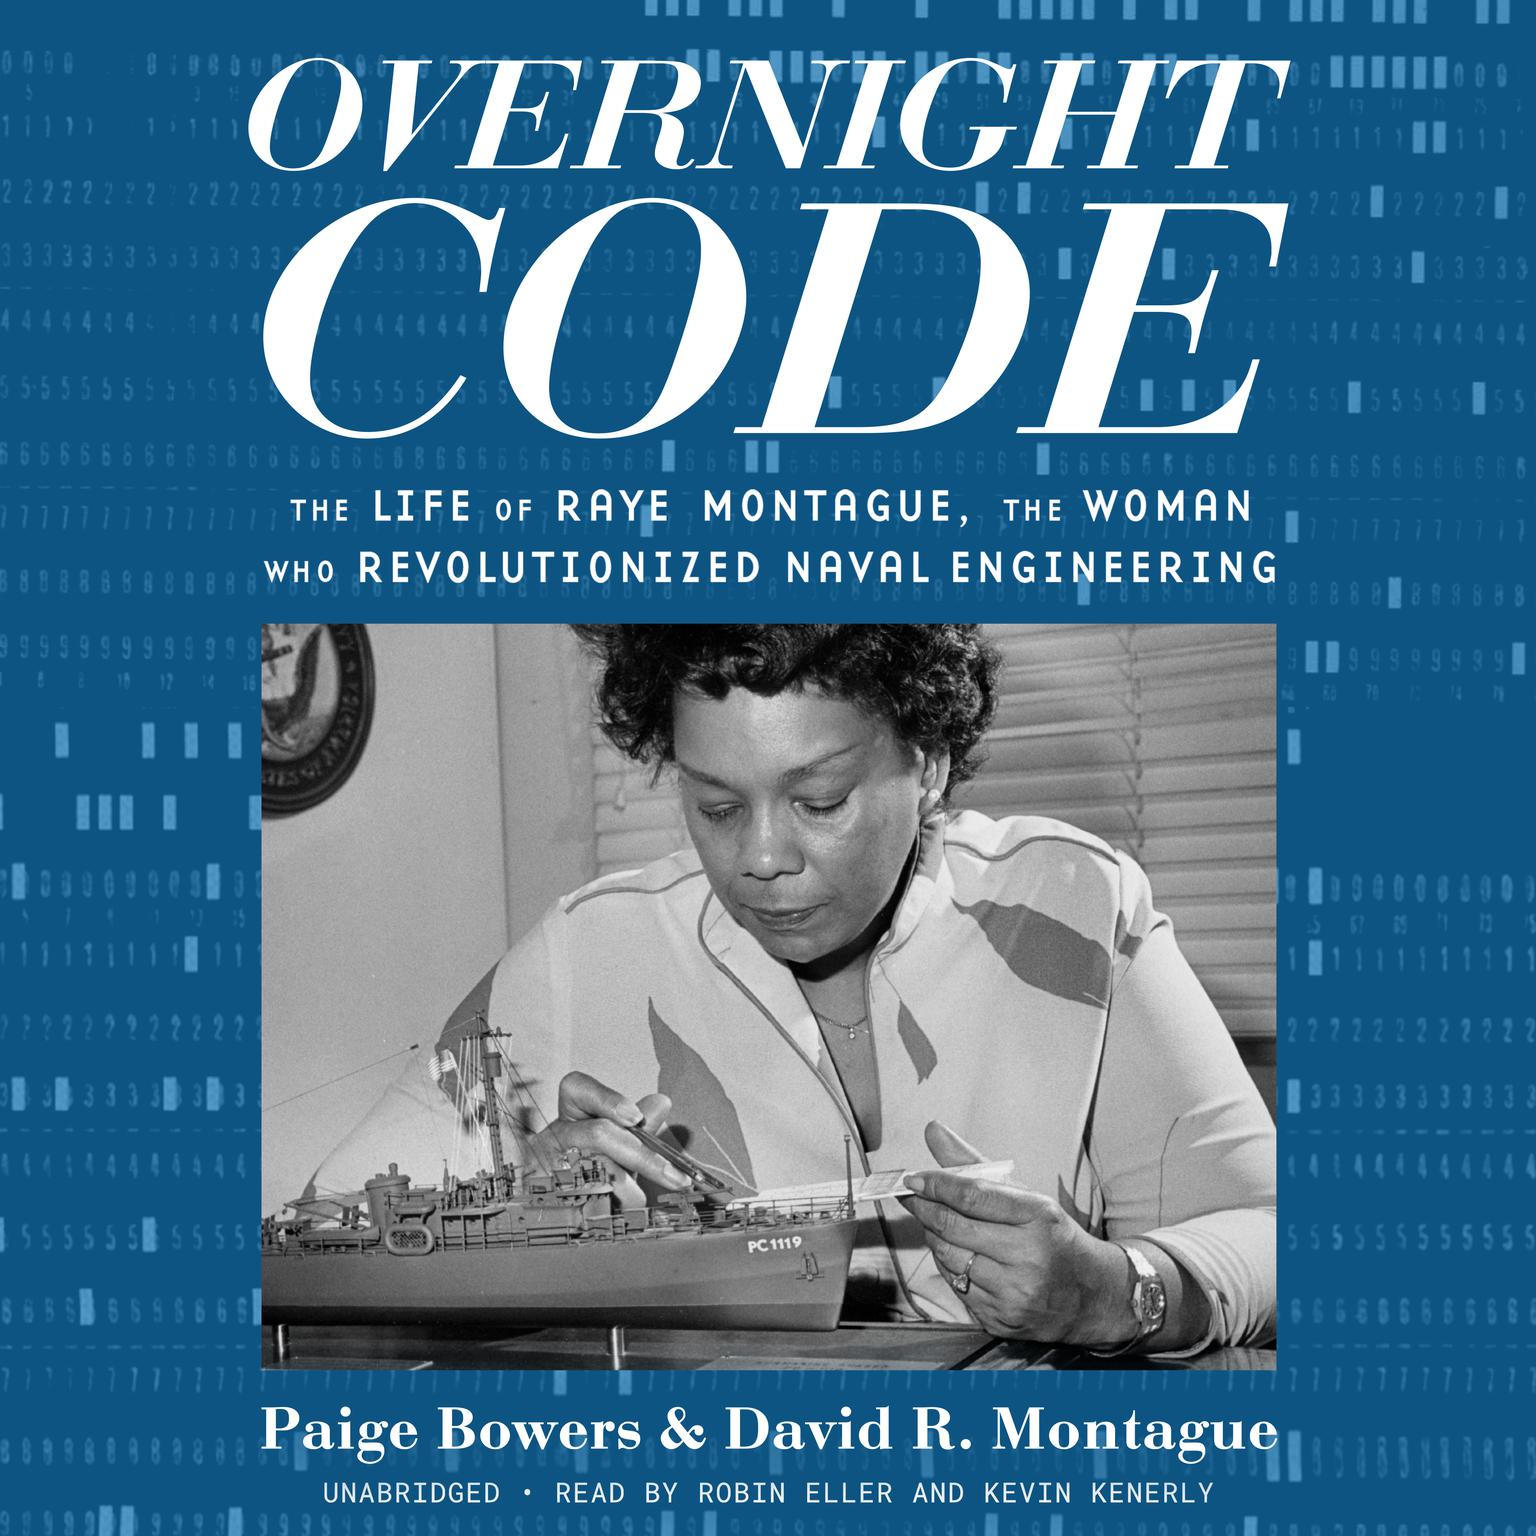 Overnight Code: The Life of Raye Montague, the Woman Who Revolutionized Naval Engineering Audiobook, by Paige Bowers